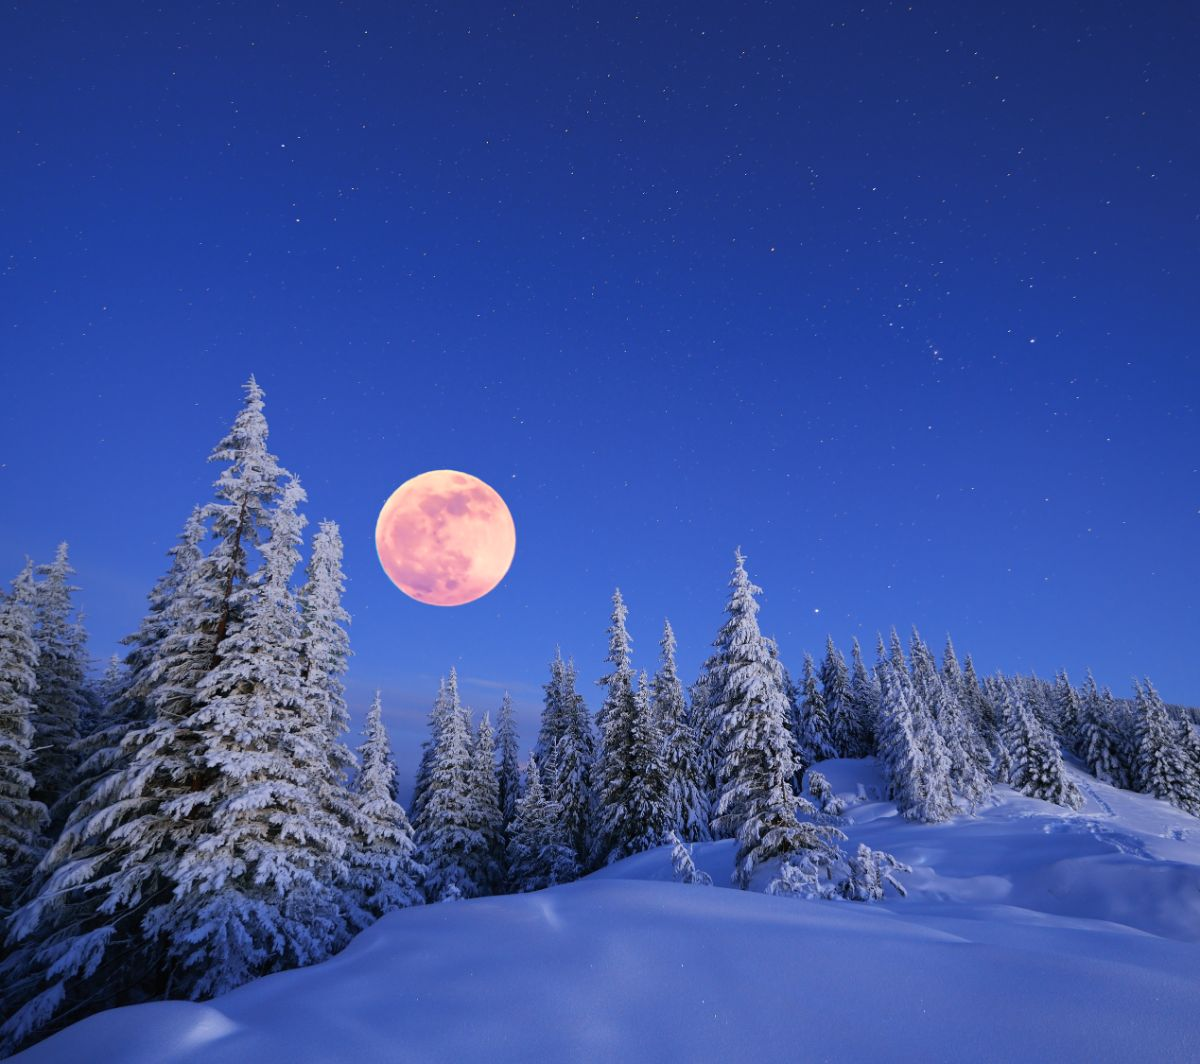 Snowy Forest Moon